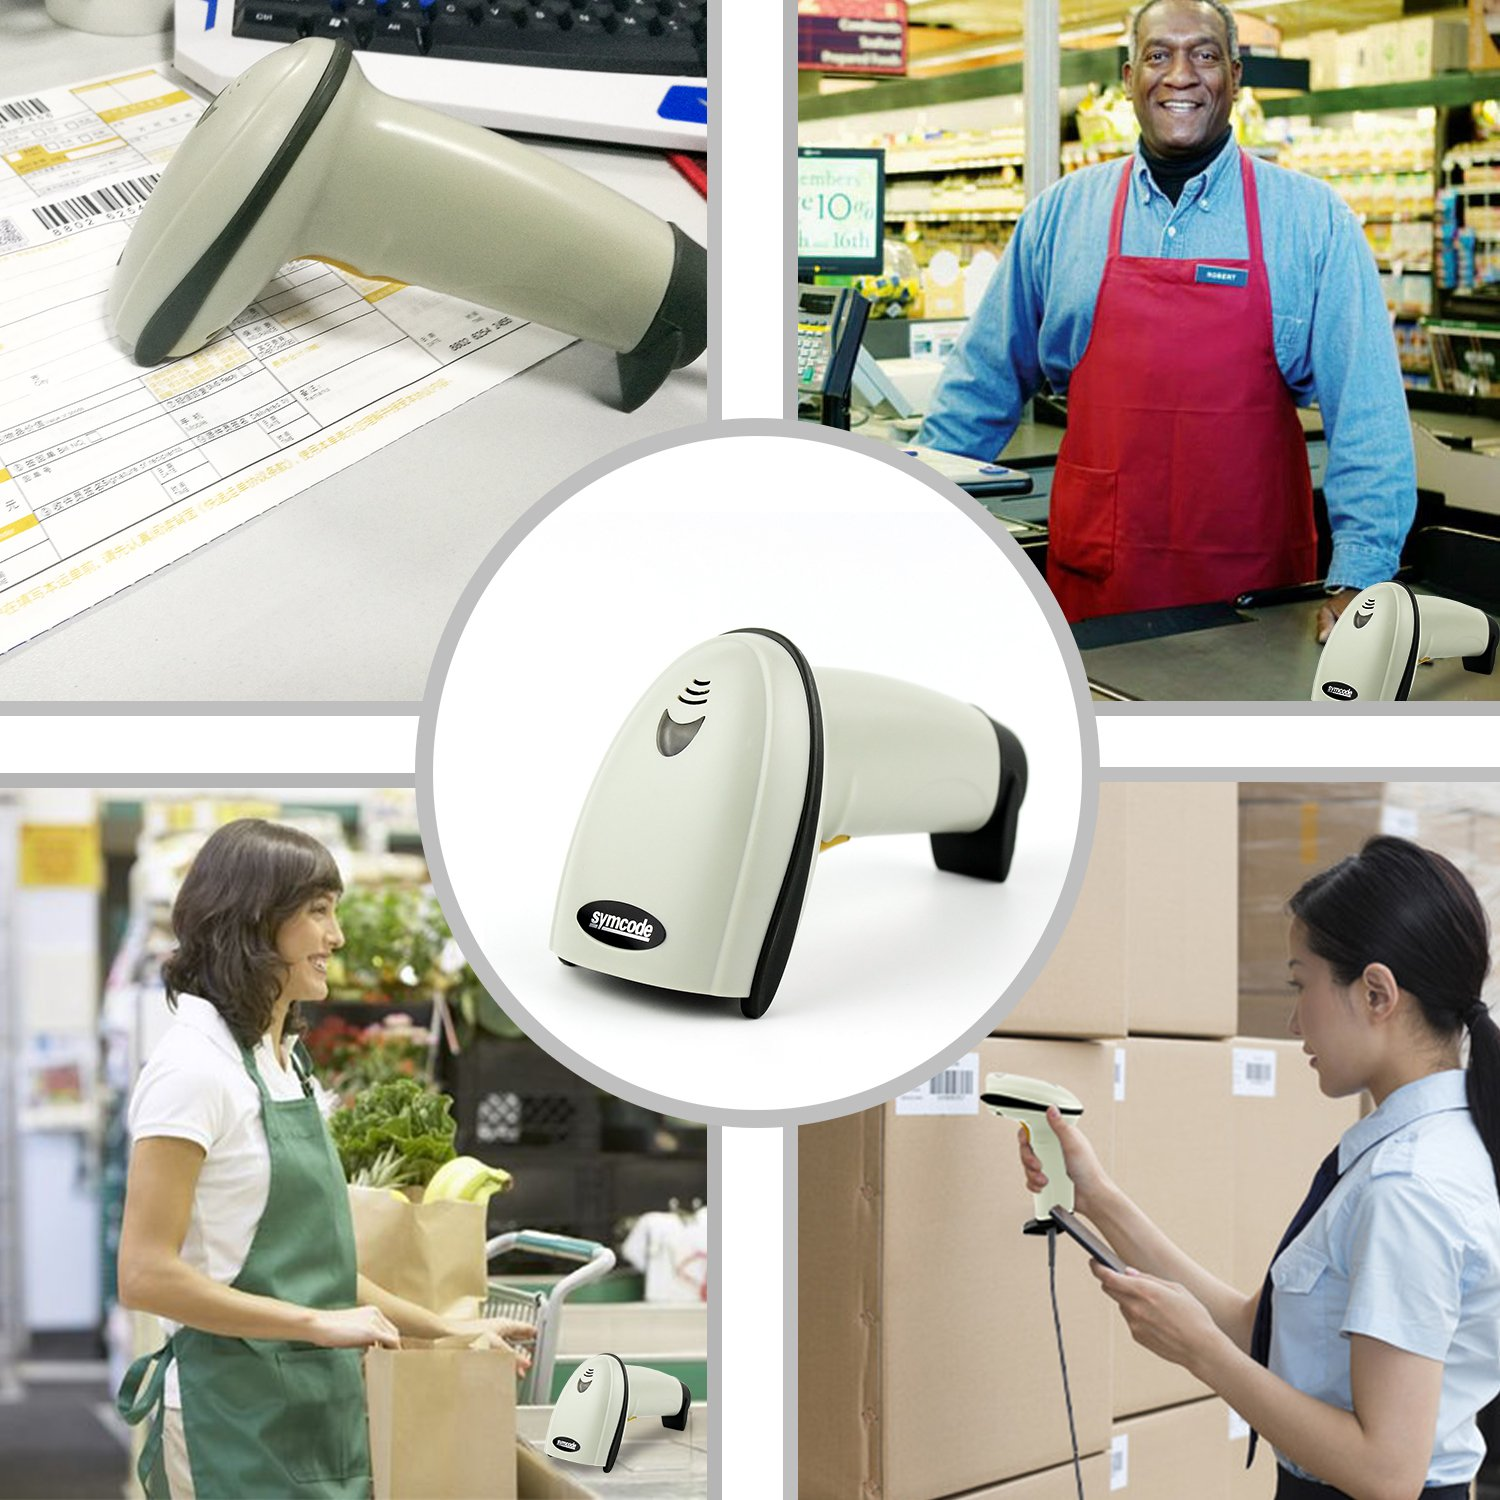 Barcode Scanner,Symcode USB Laser Wired Scan Handheld Bar Code Reader Small and Exquisite Black